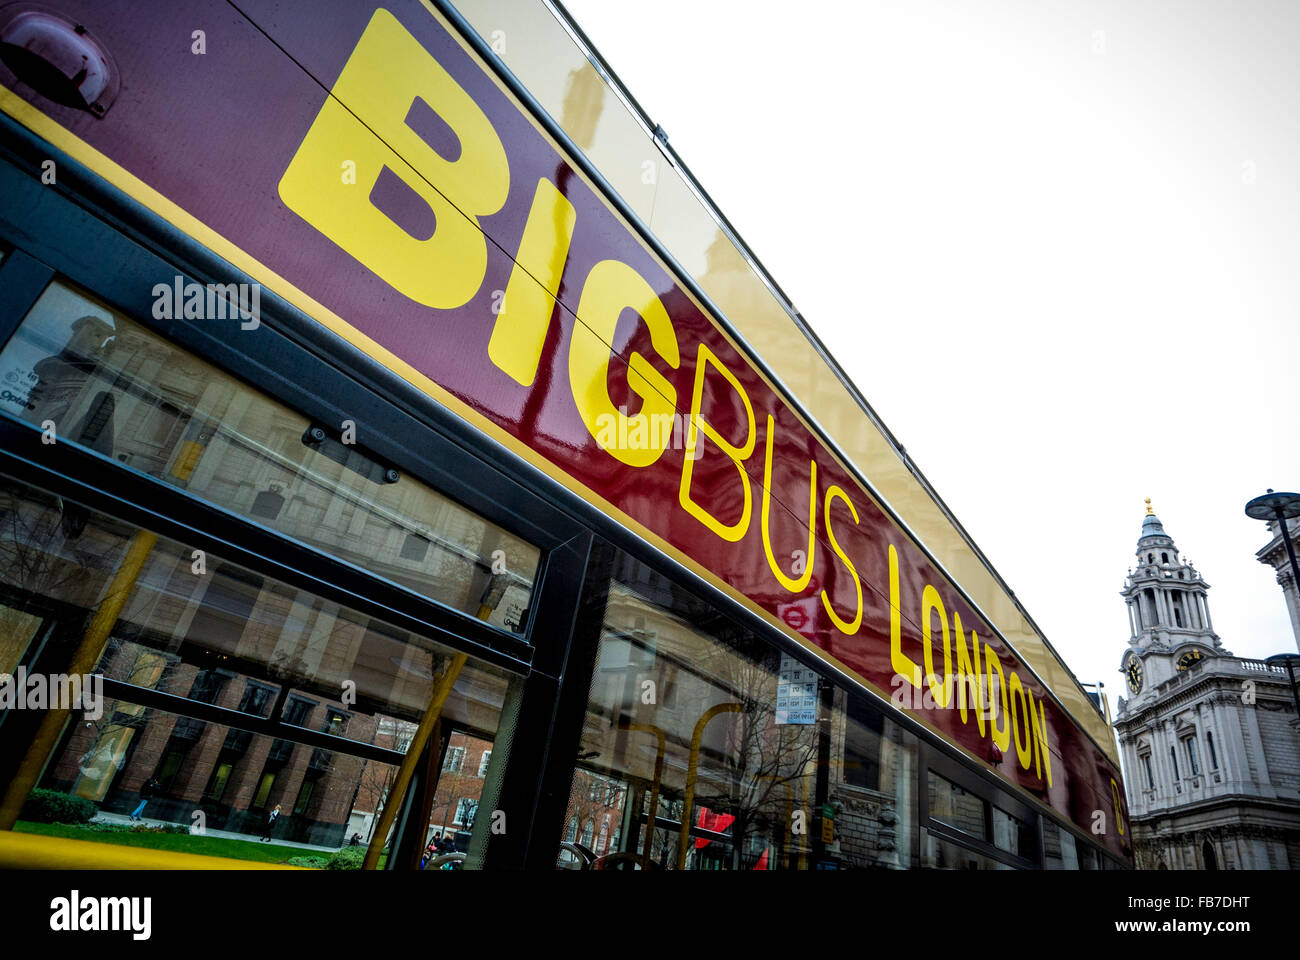 BIG BUS LONDON sign on side of tourist sightseeing bus, London, UK. - Stock Image